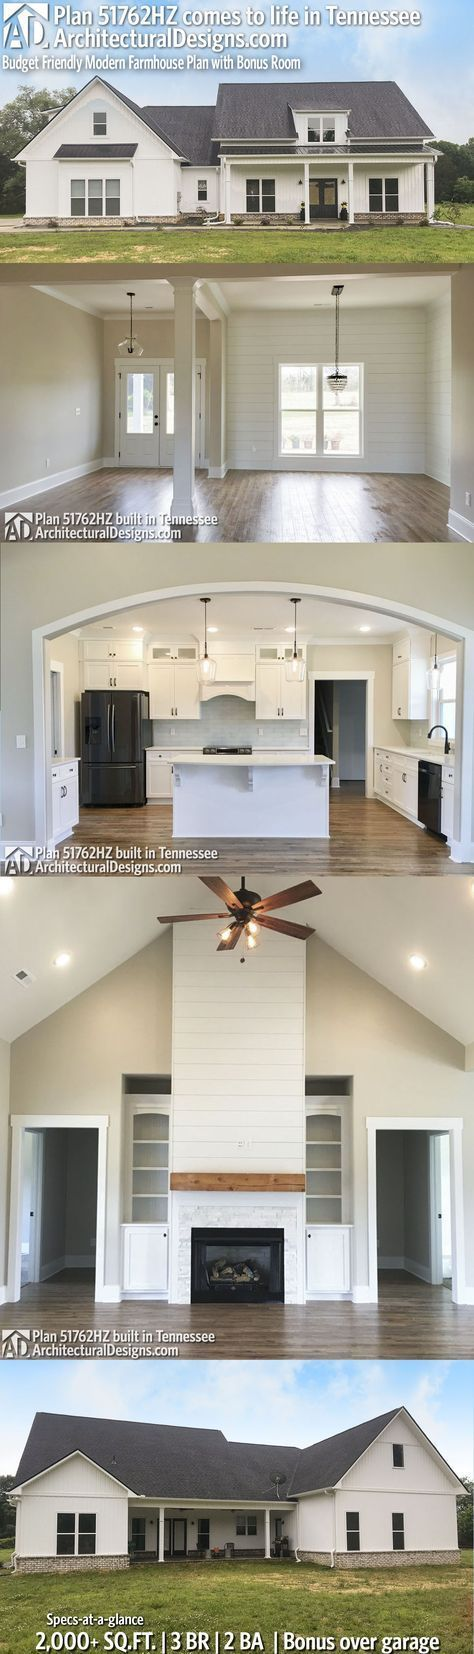 Architectural Designs House Plan 51762HZ Client Built In Tennessee. 3+BR, 2